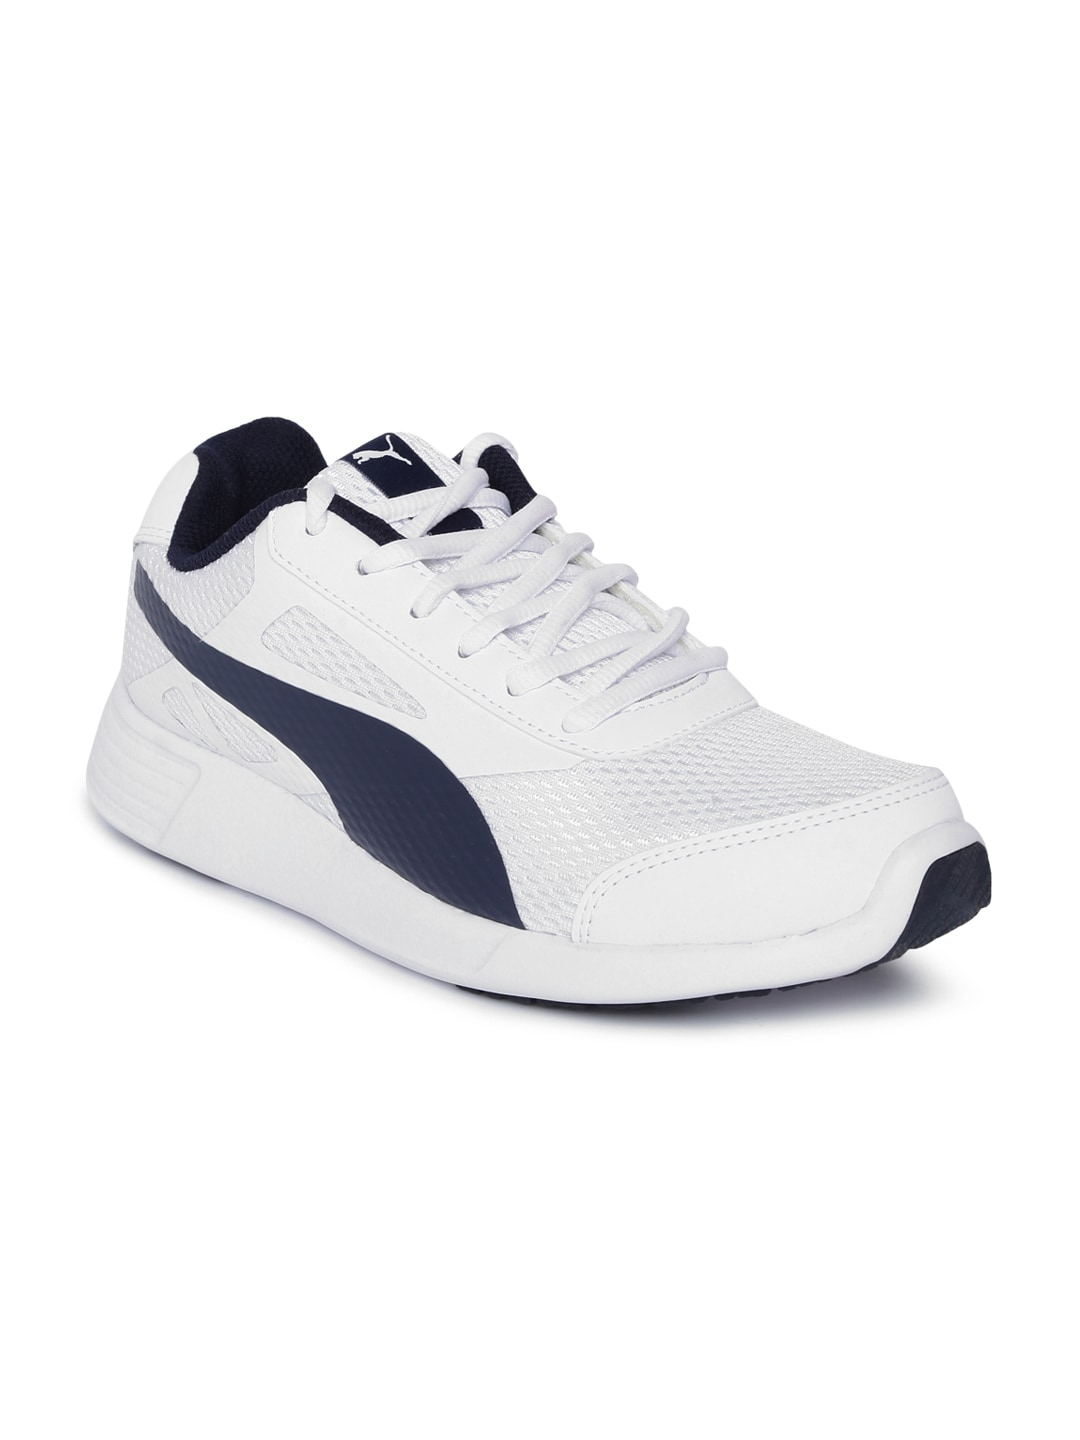 bc9500049f1 Shoes - Buy Shoes for Men